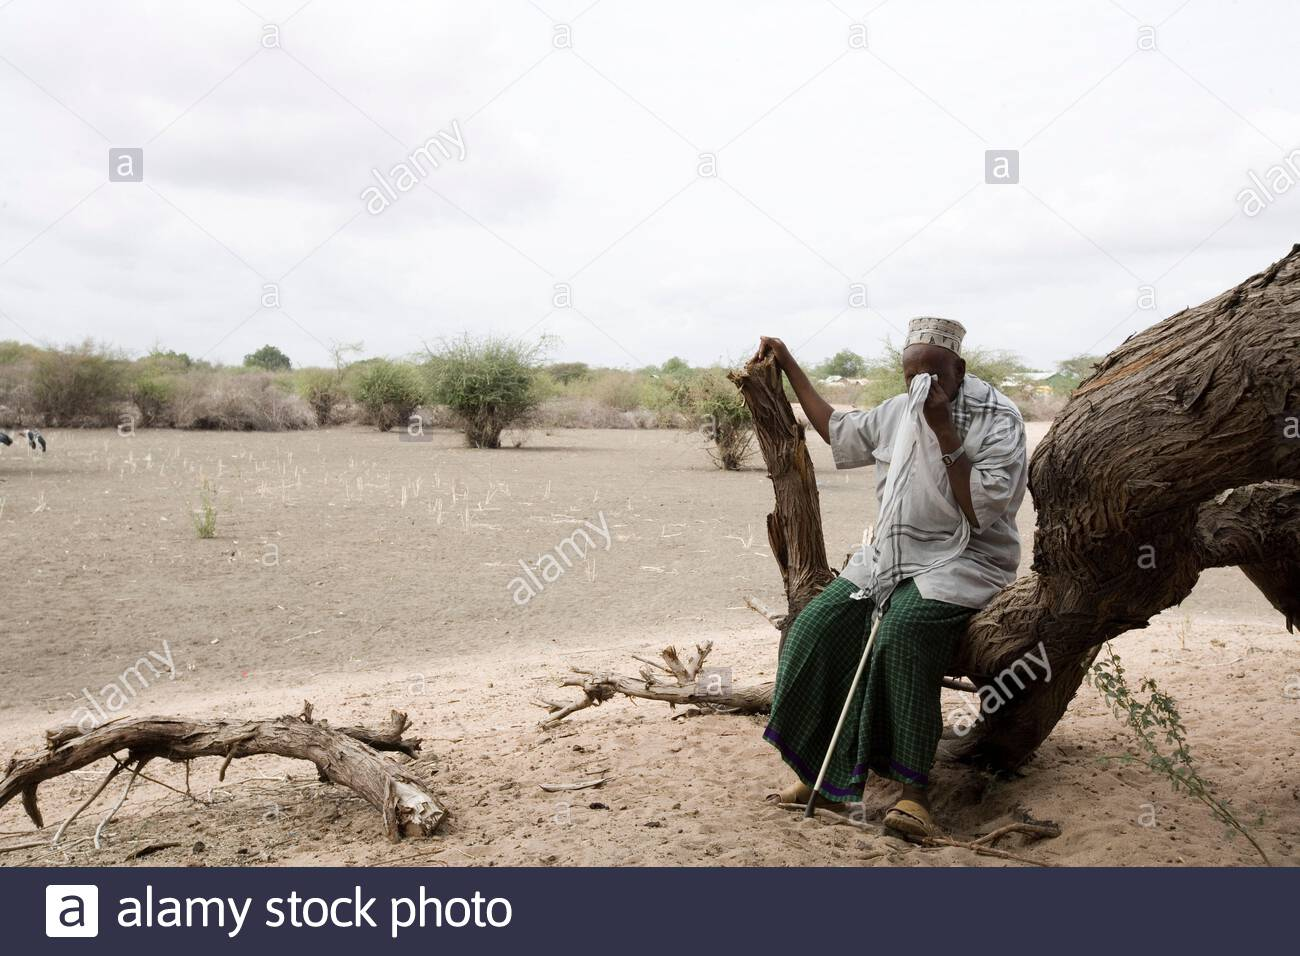 Kenya - Dadaab - 24th July 2011. Mohammed Ahmed Shuria, 60 years old, sitting in his field inside Hagadera refugee camp where he arrived in 1991, when the war started in Somalia. Due to the drought his field has been unproductive for the past 2 years. Bef Stock Photo